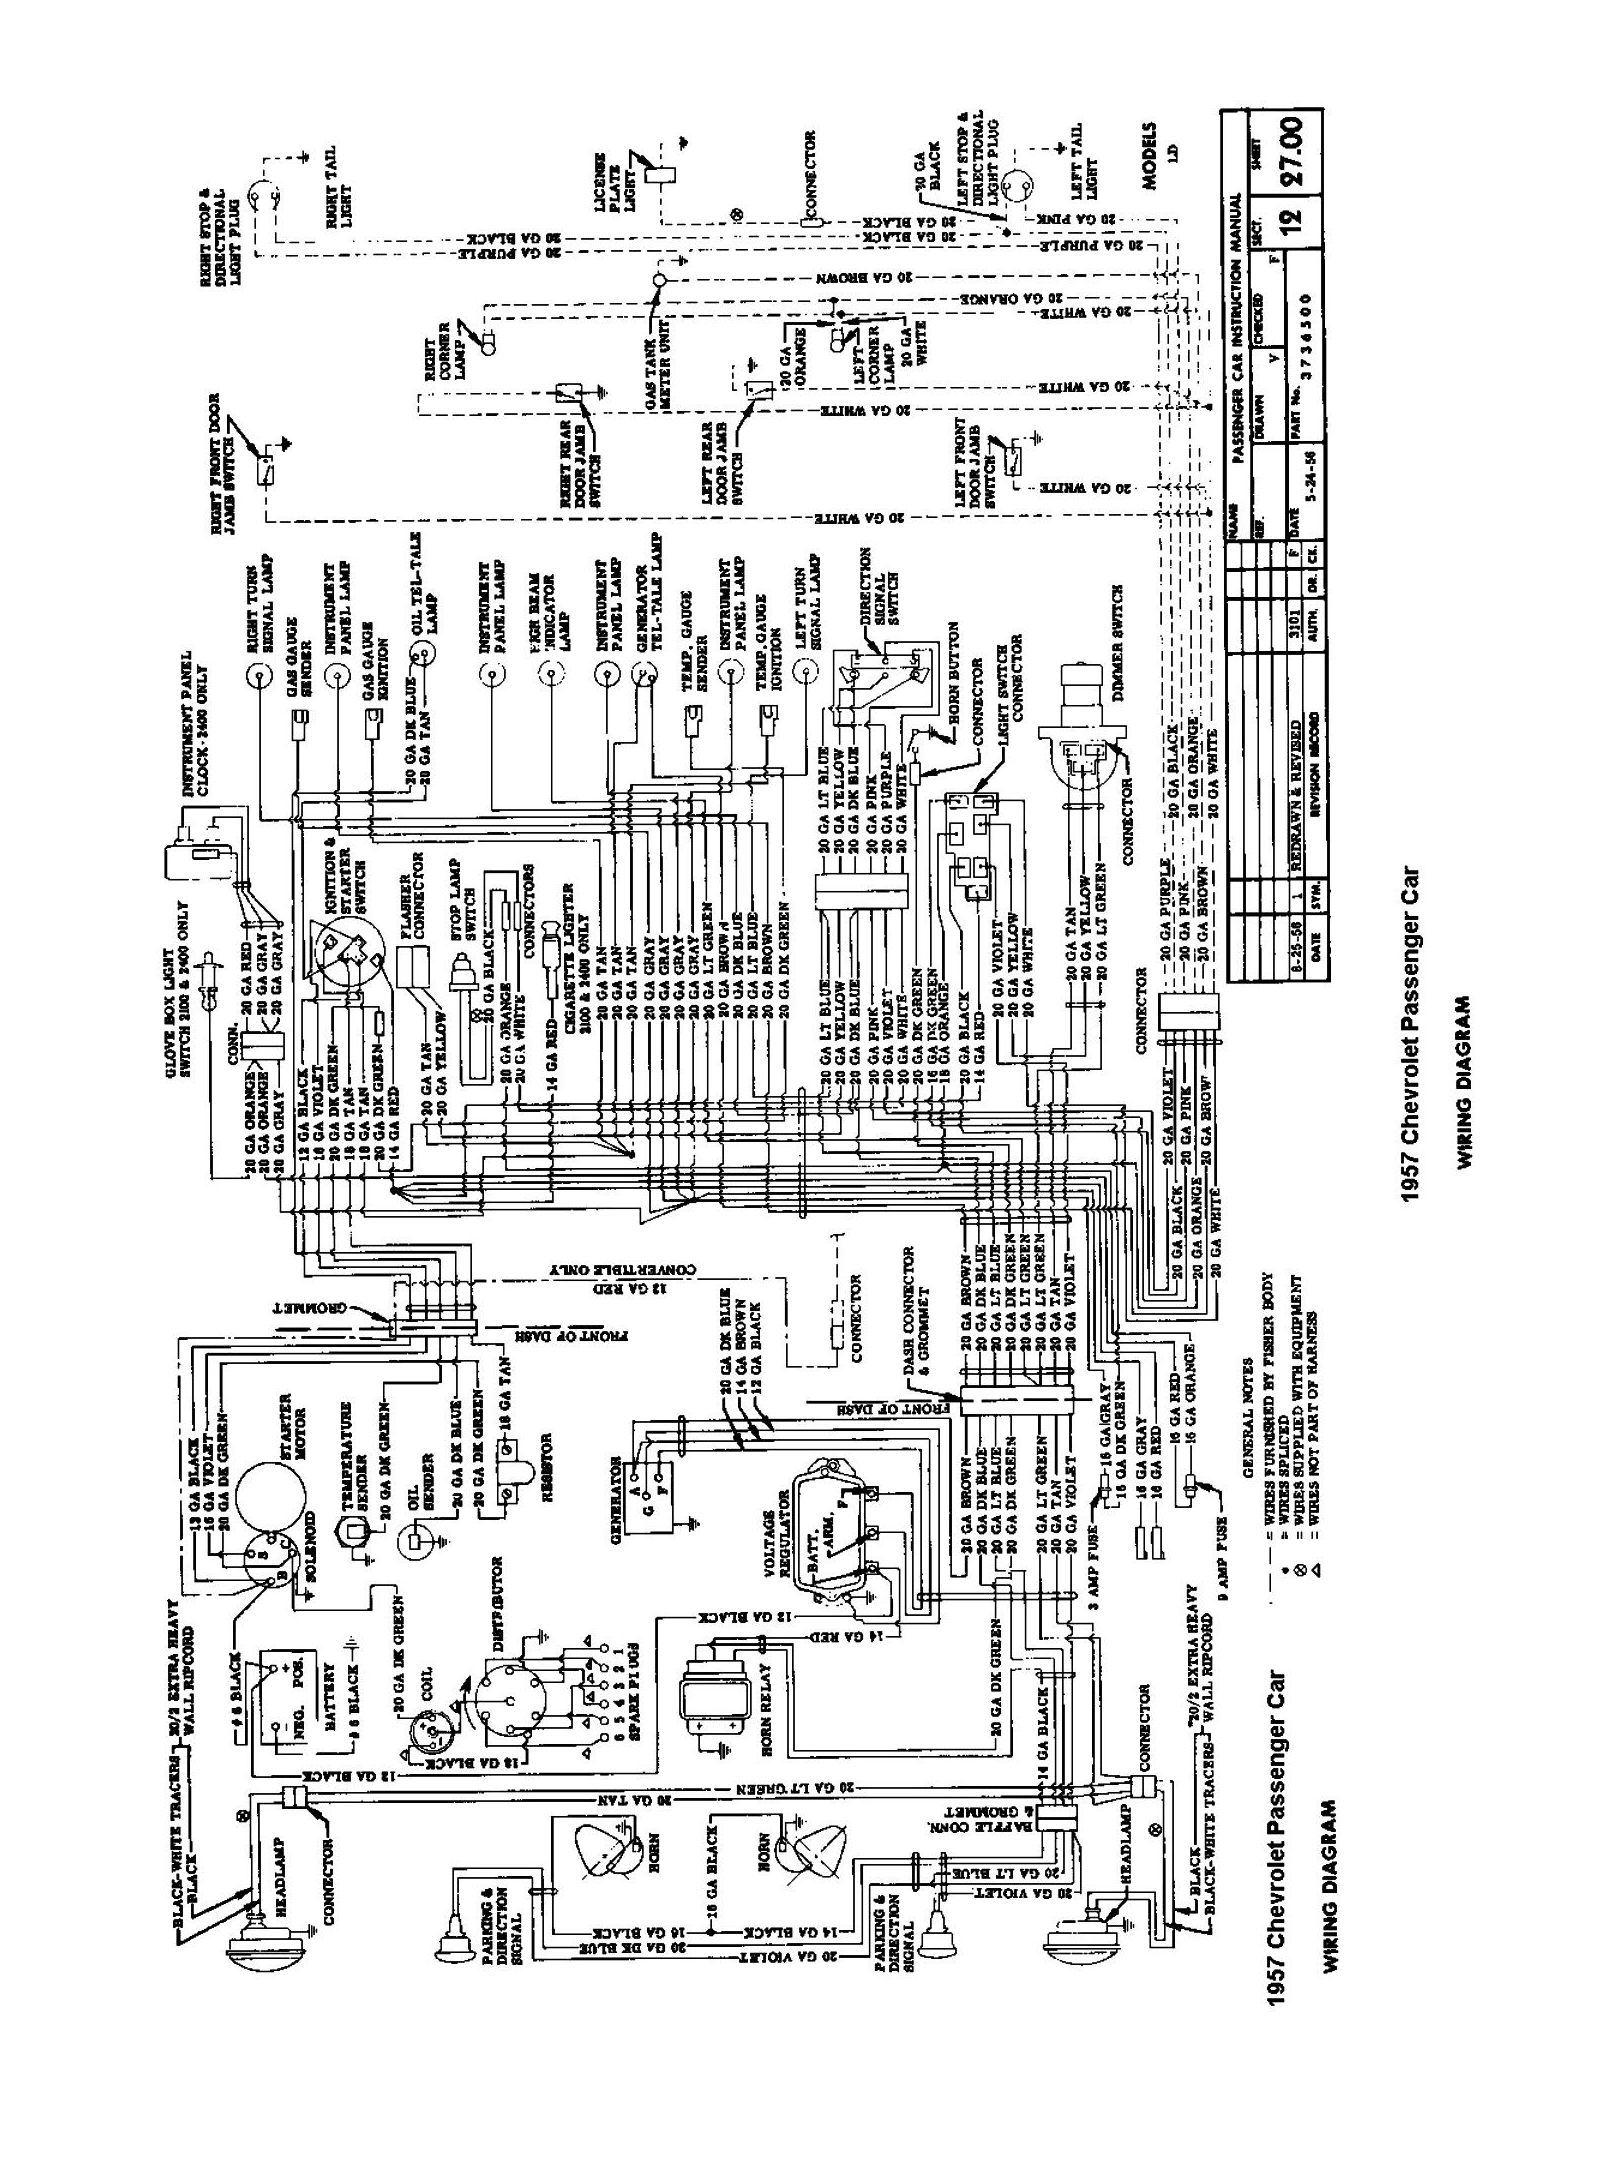 medium resolution of wiring diagram for 1957 chevrolet bel air wiring diagram paper 57 chevy wiring diagram 57 chevys